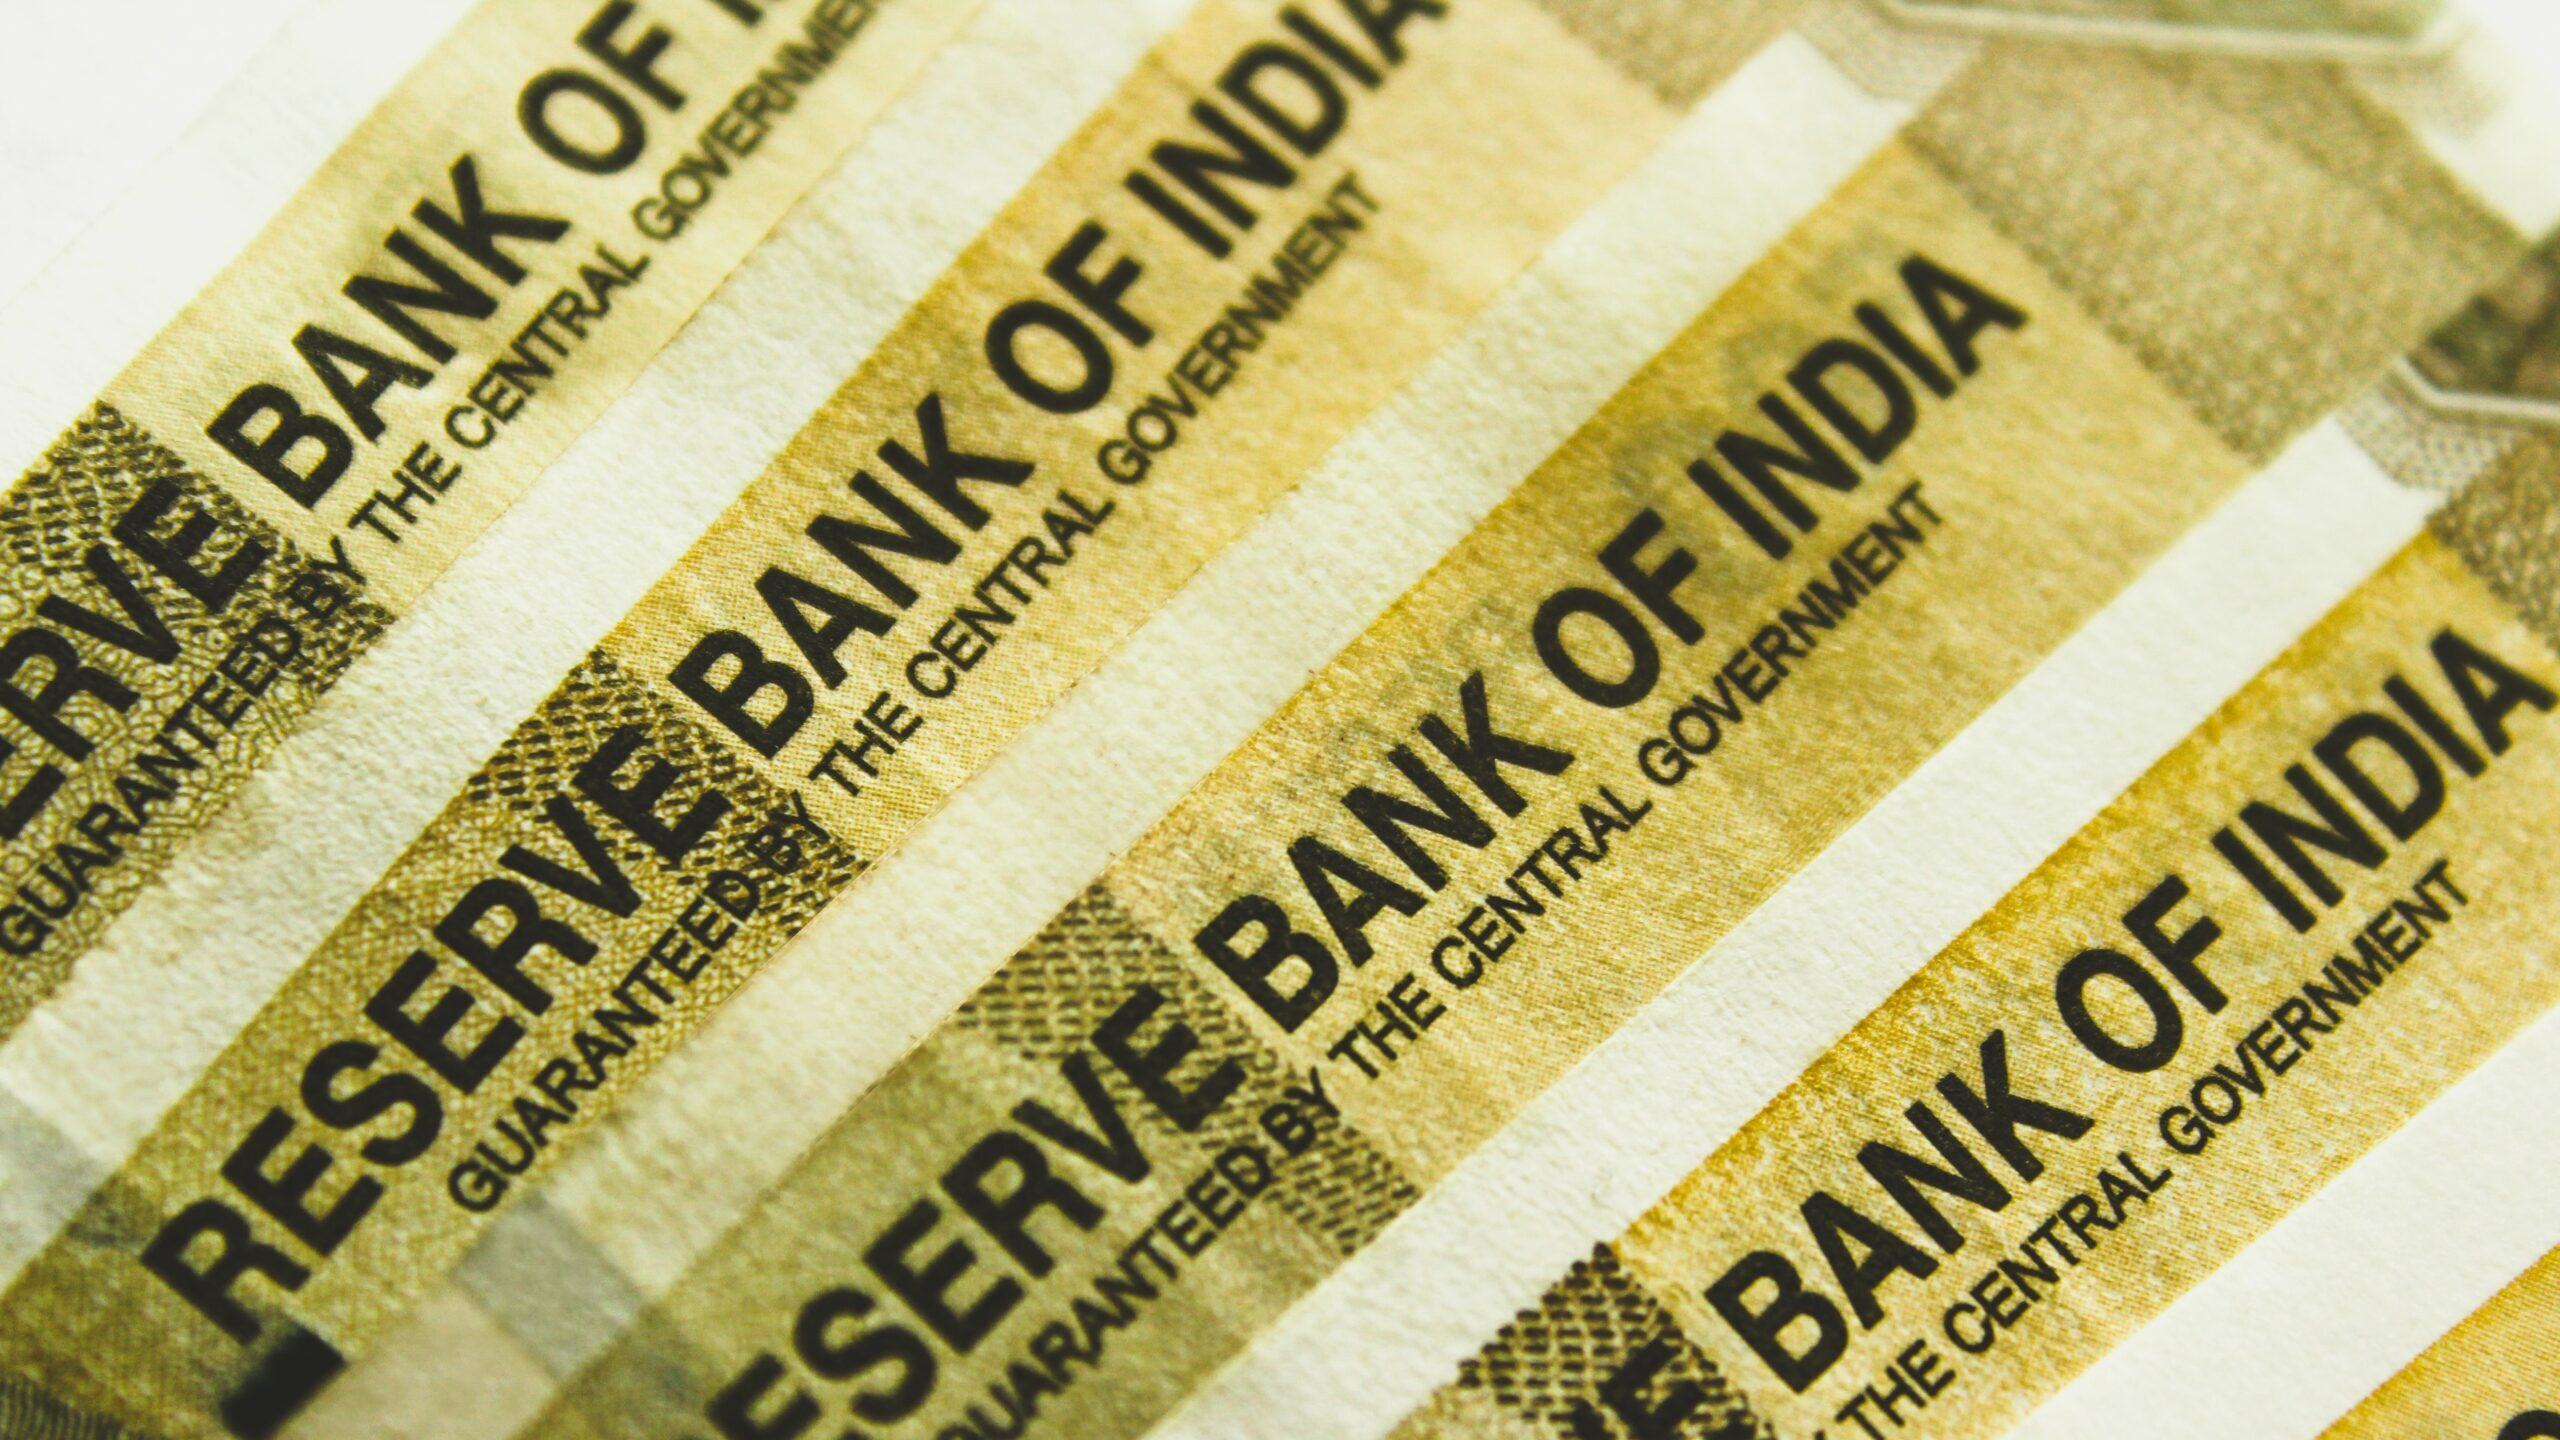 159 Percent Increase in Indian Bank Frauds Last Year